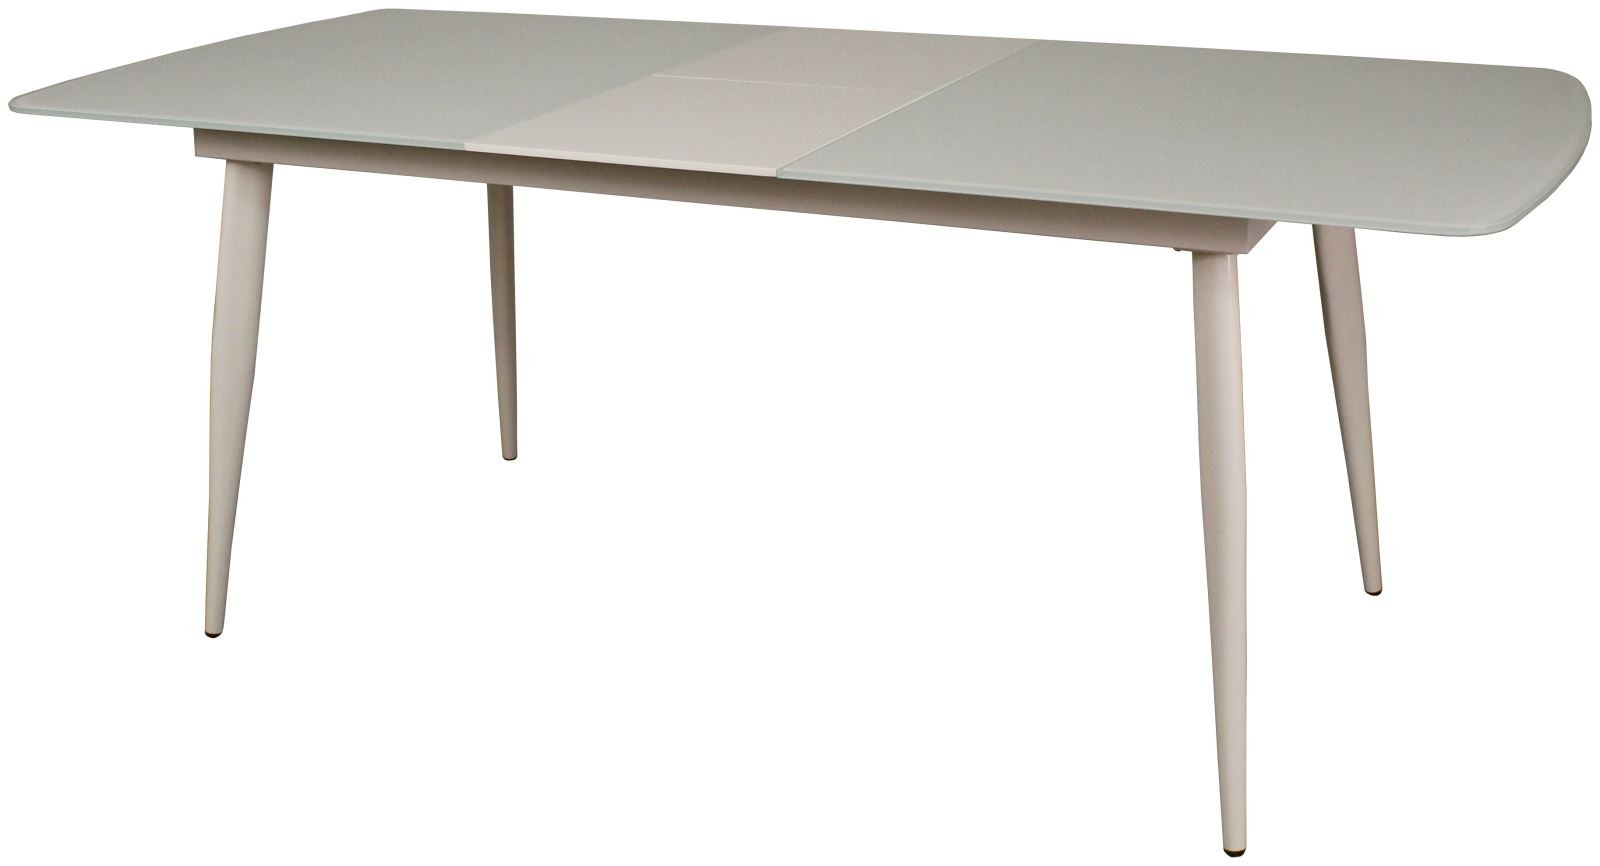 CONTEMPORARY Large Dining Table - White